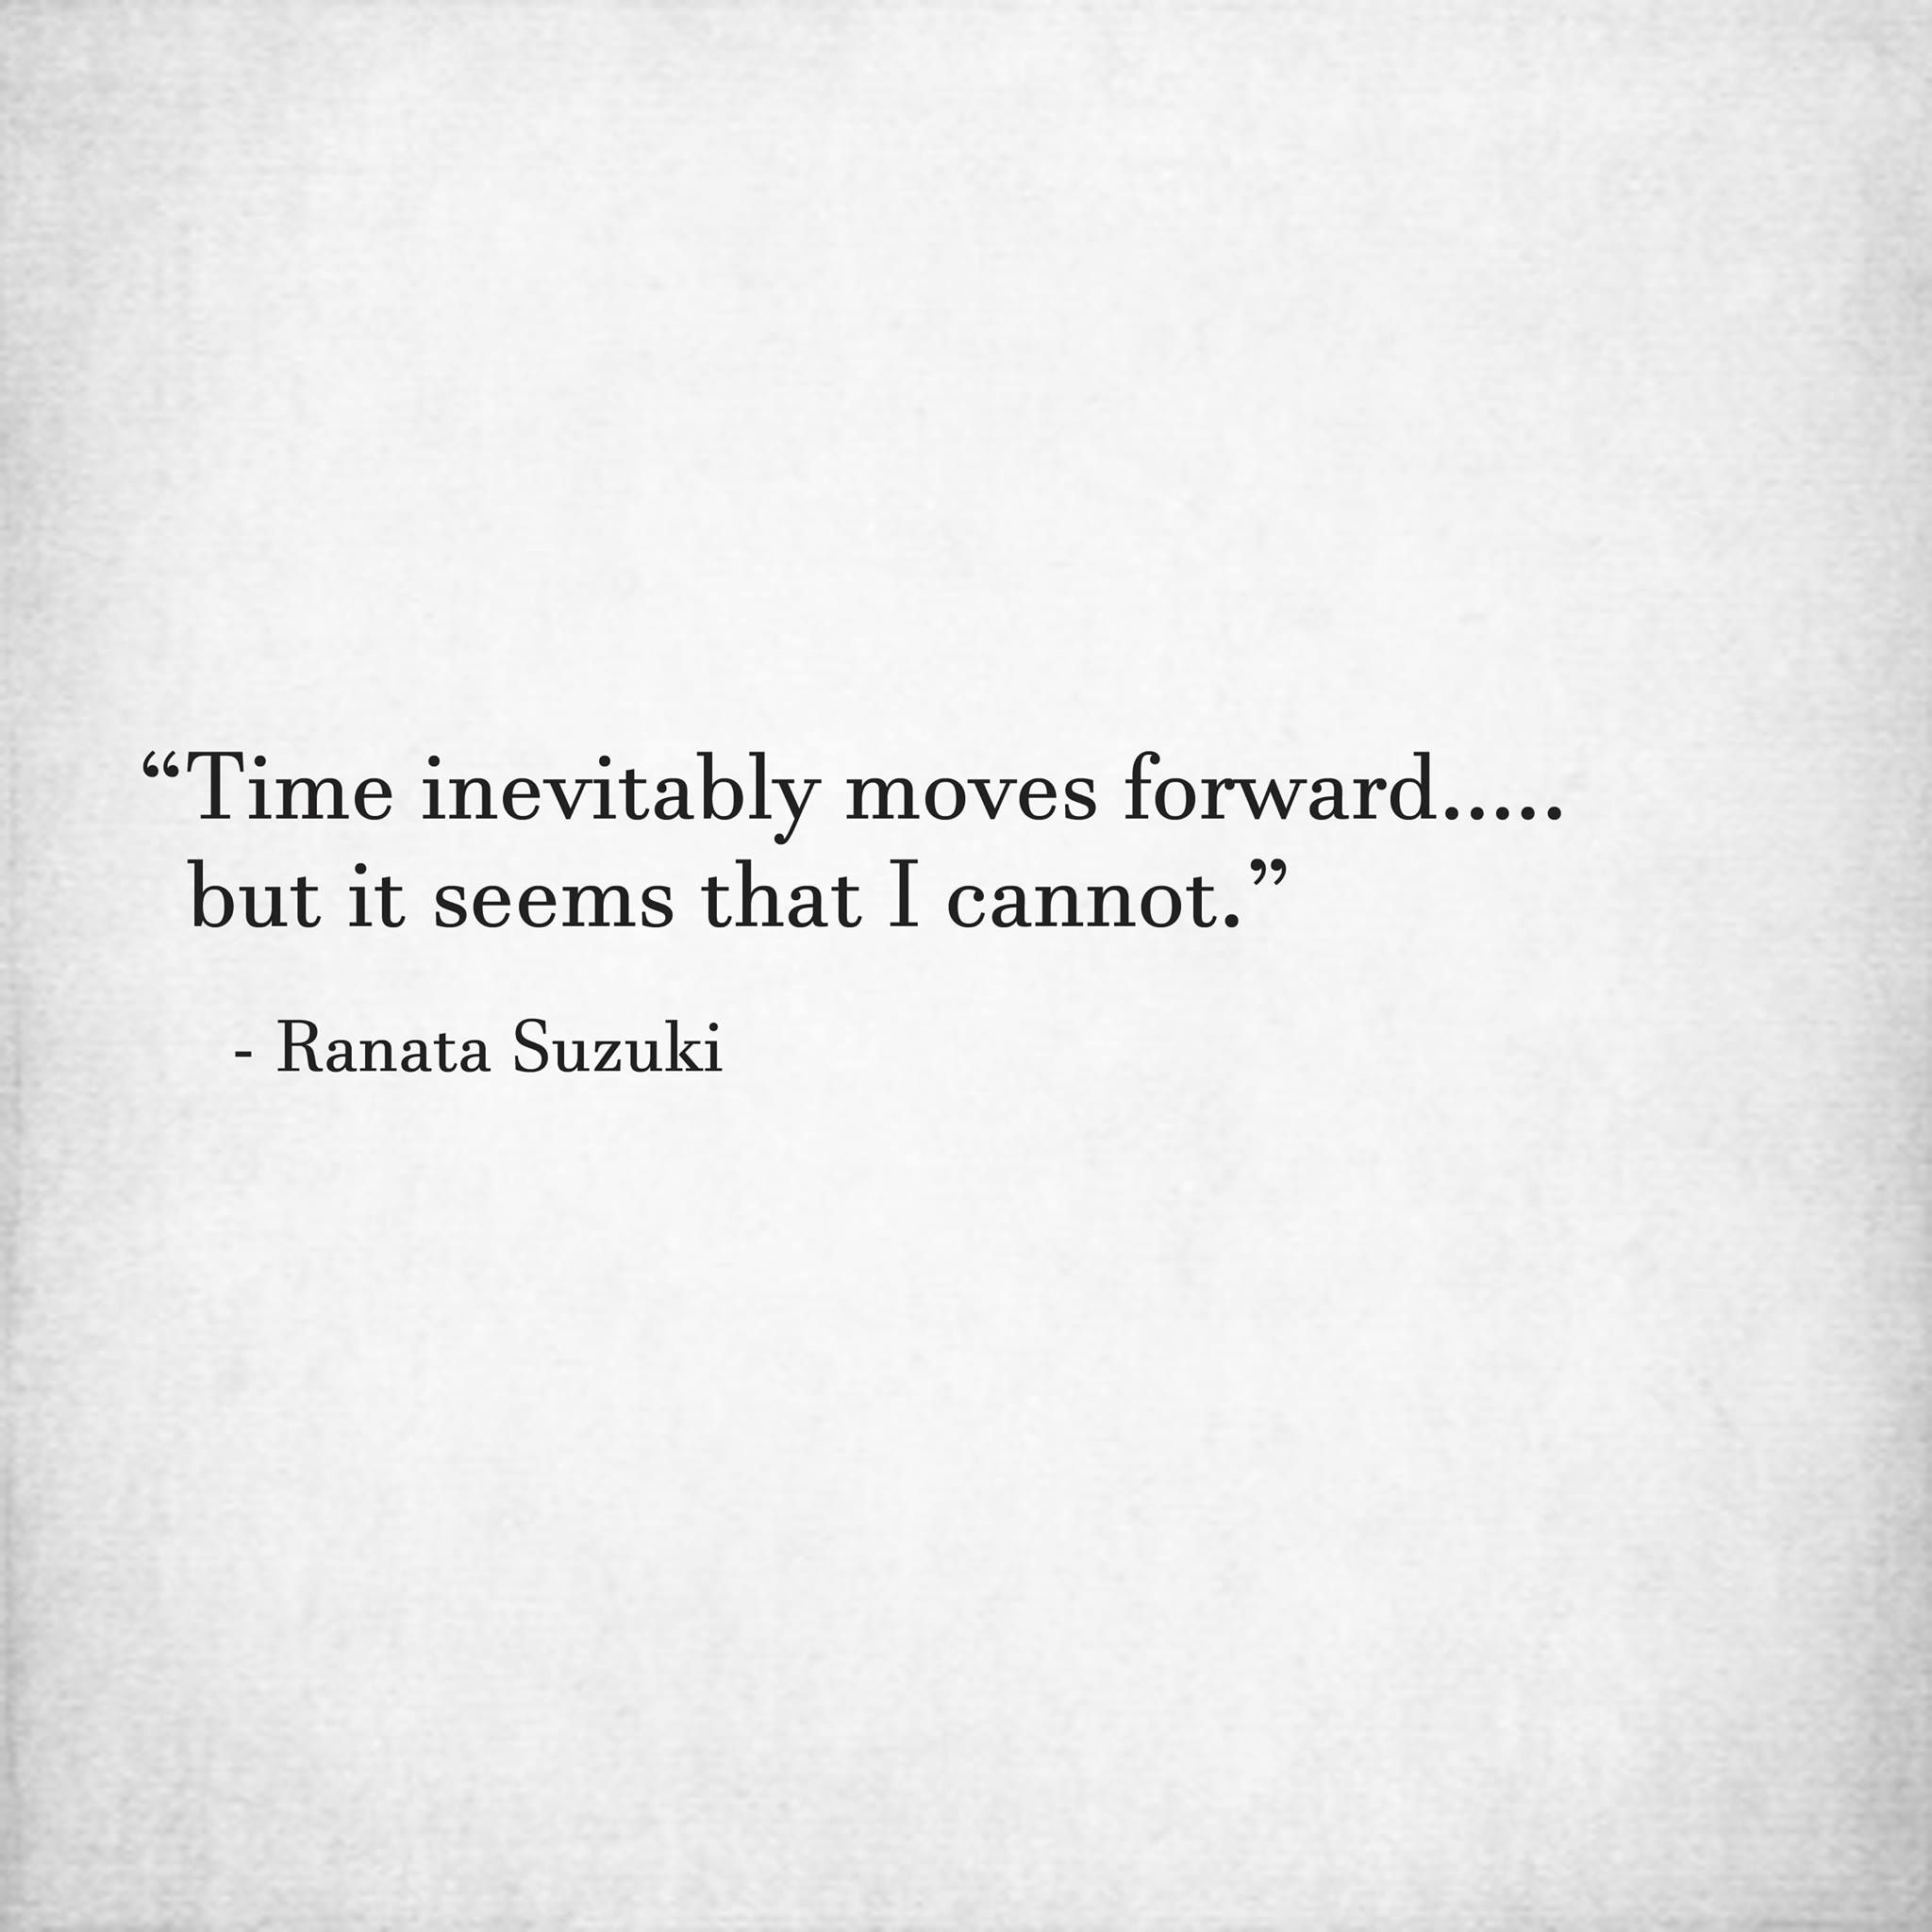 Lost Love Quotes Time Inevitably Moves Forward….but It Seems That I Cannot